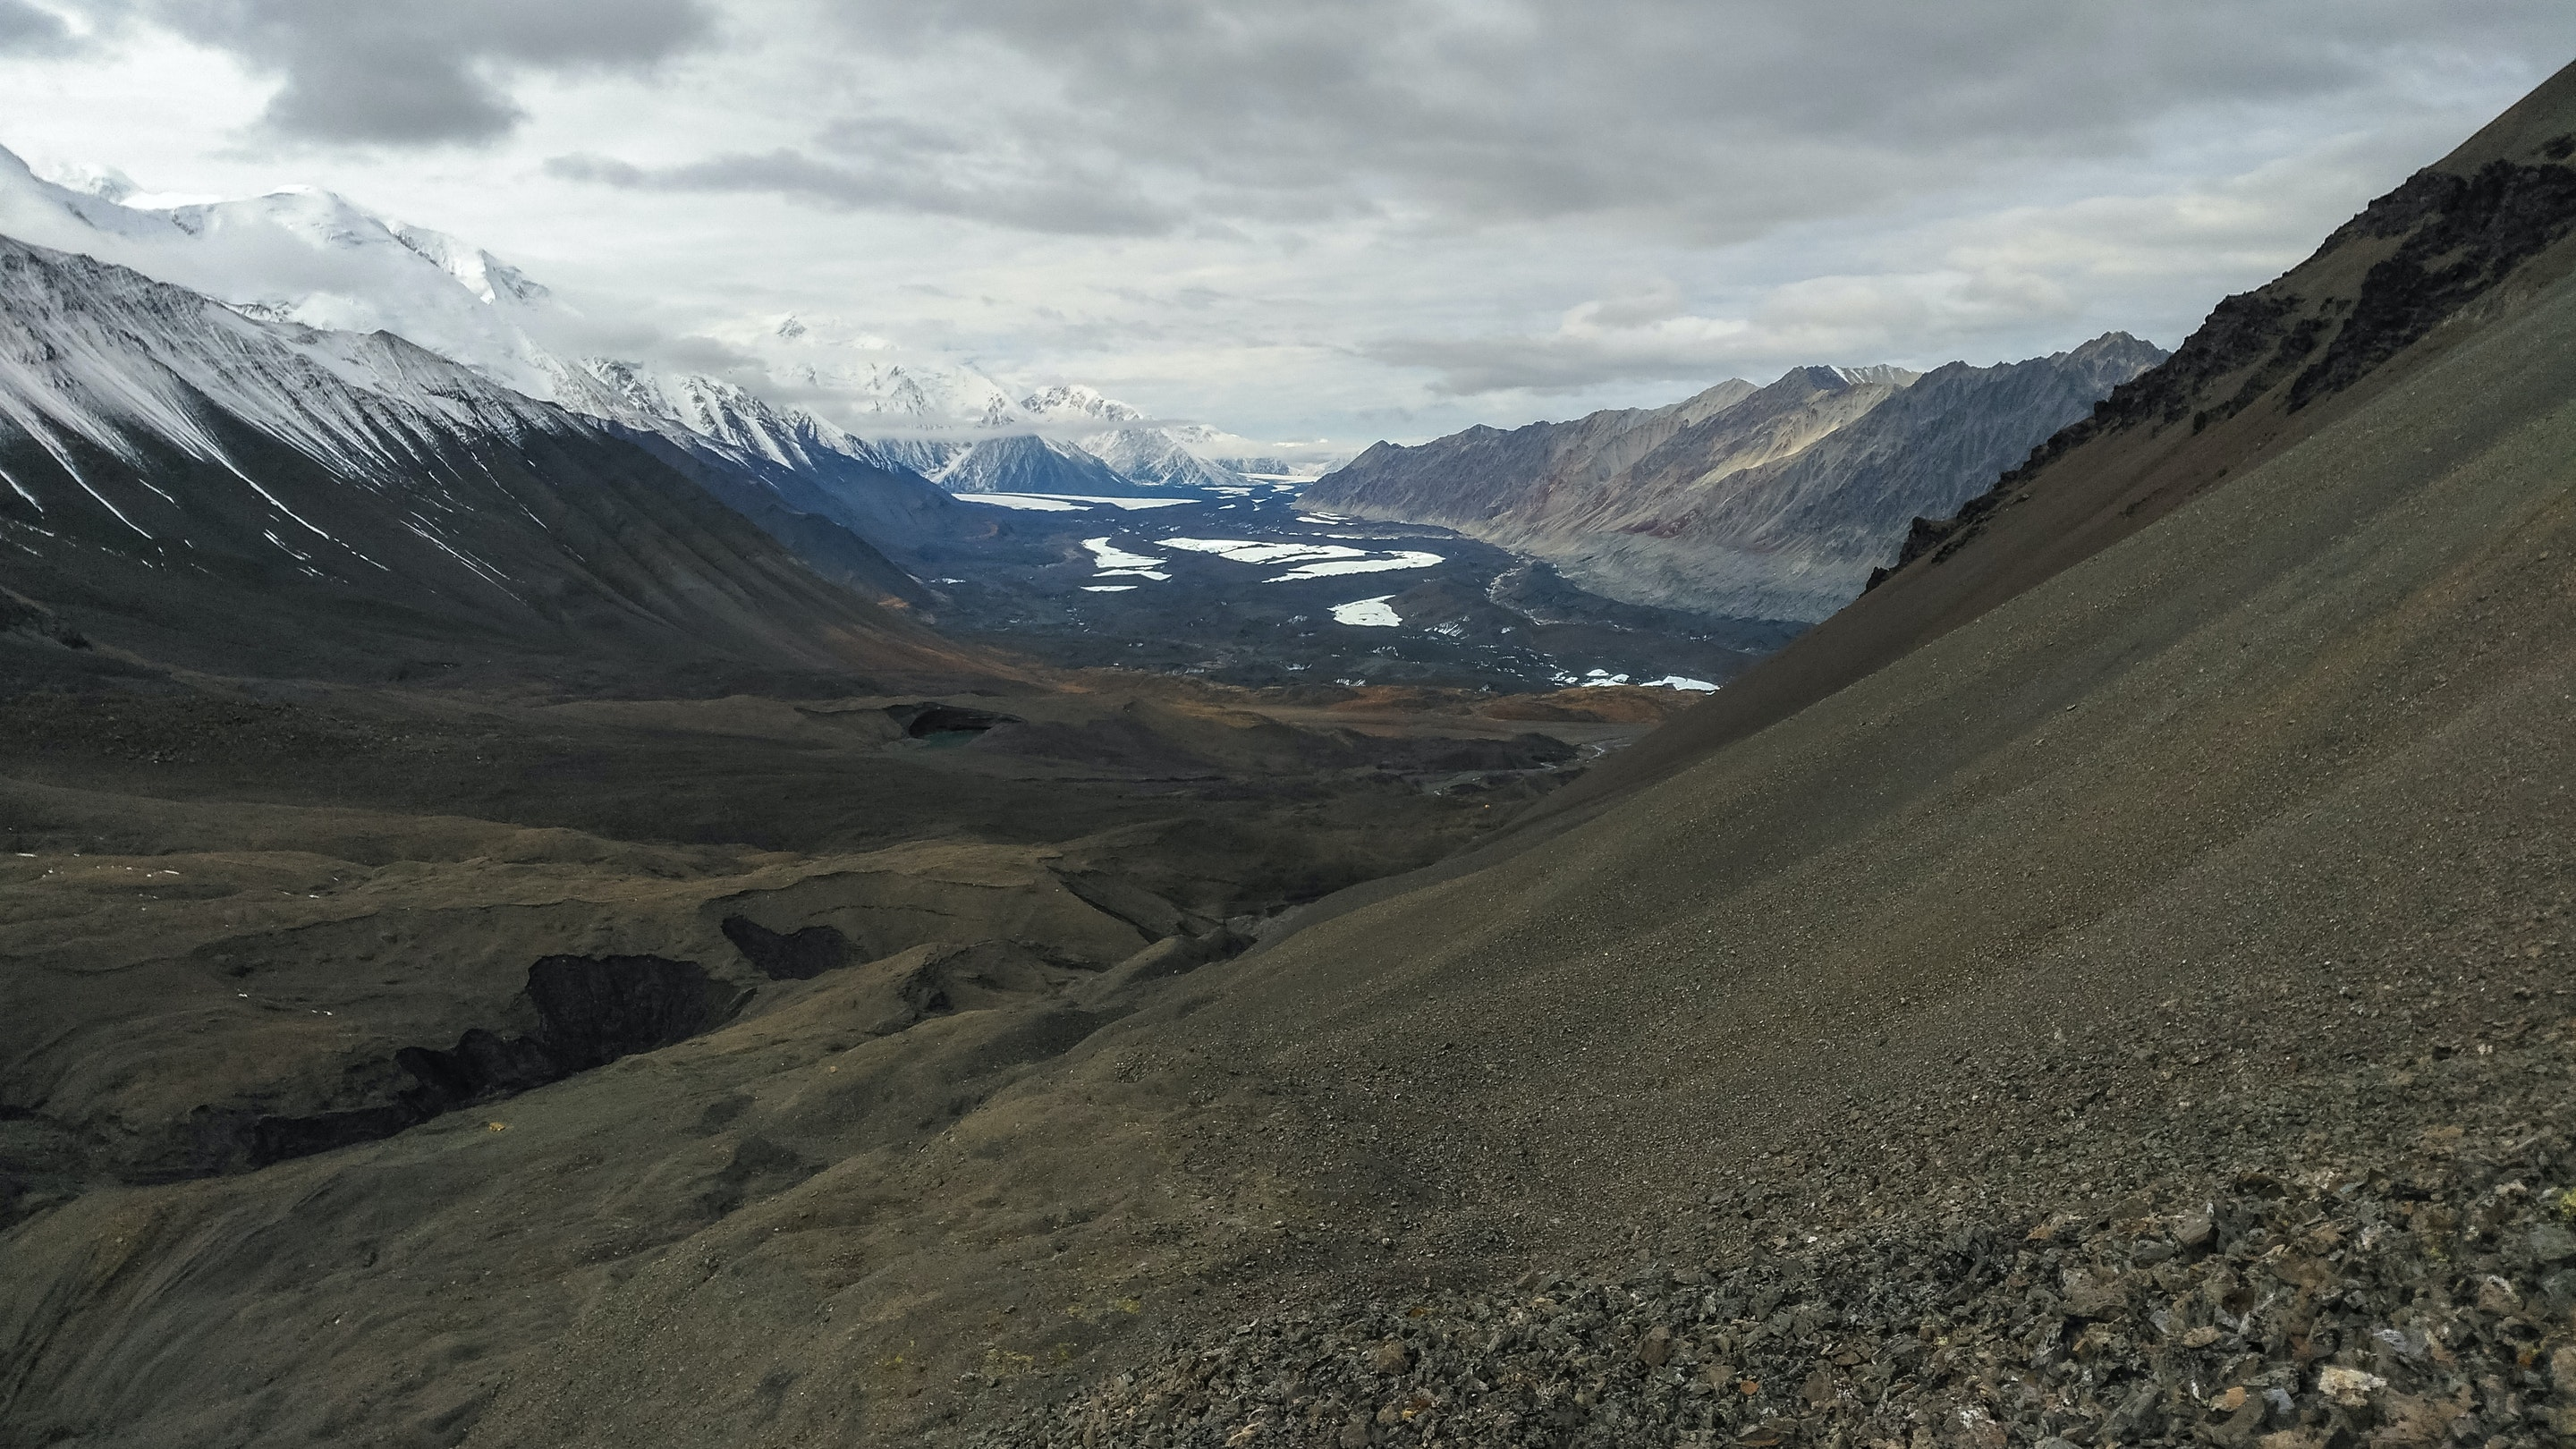 Looking back... Where's my tent? - Denali National Park